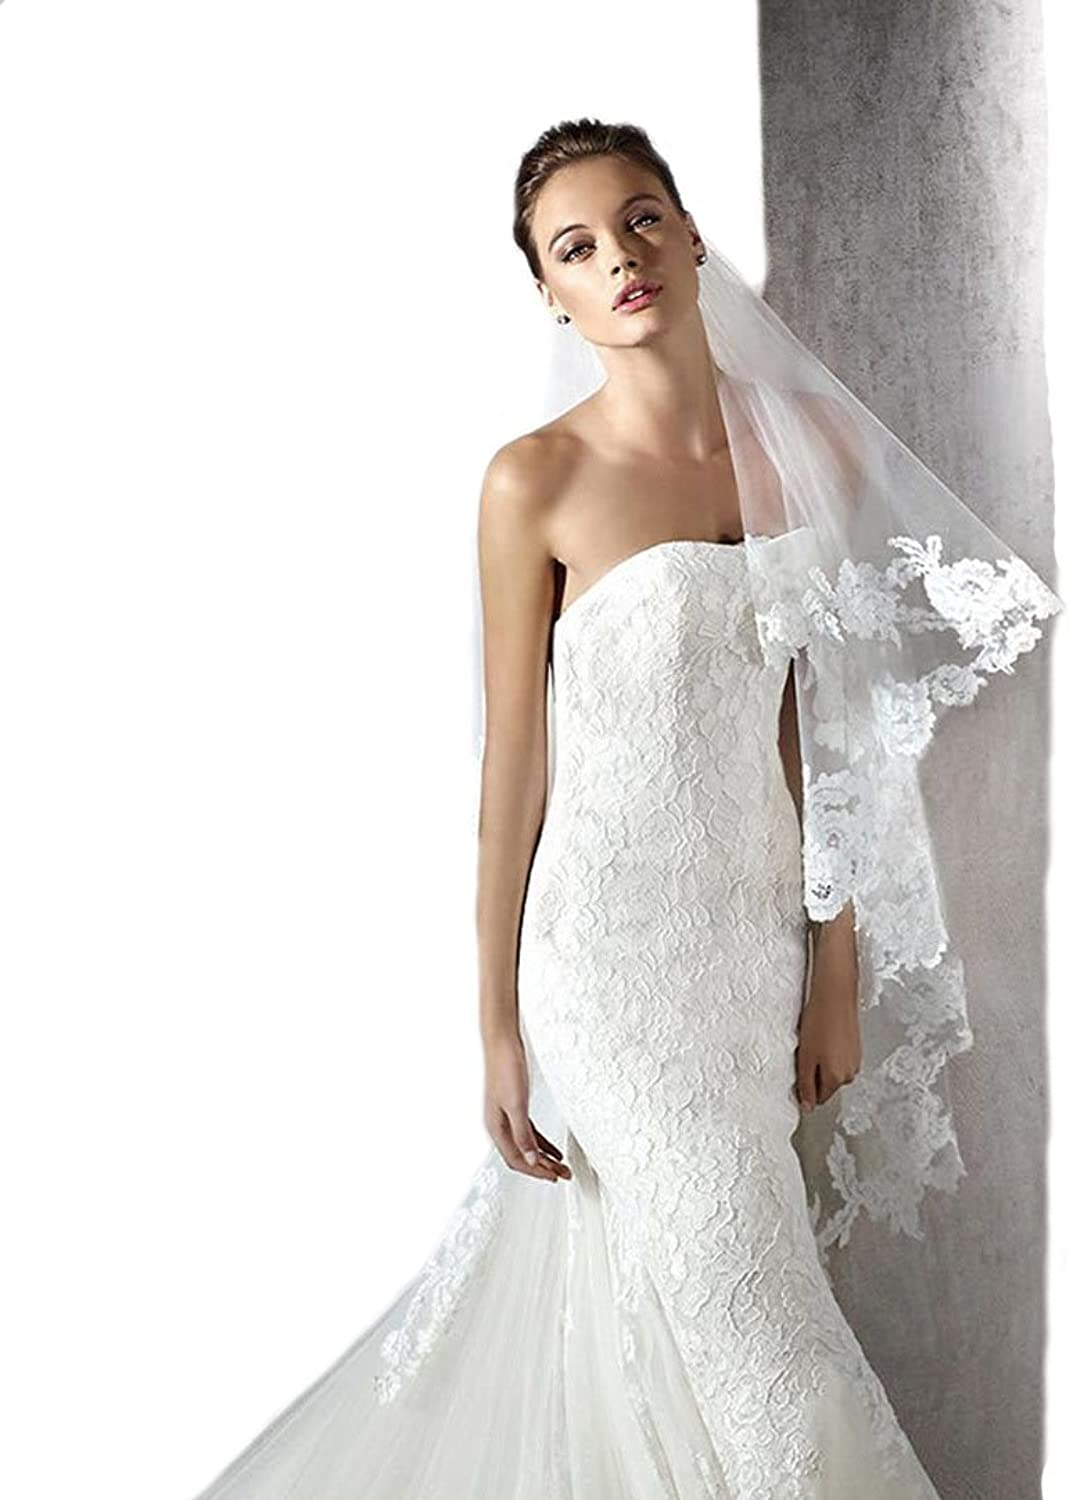 Gogh Wedding Bridal Veil NEW   Short Veil with Lace Fabric Flowers Style 25